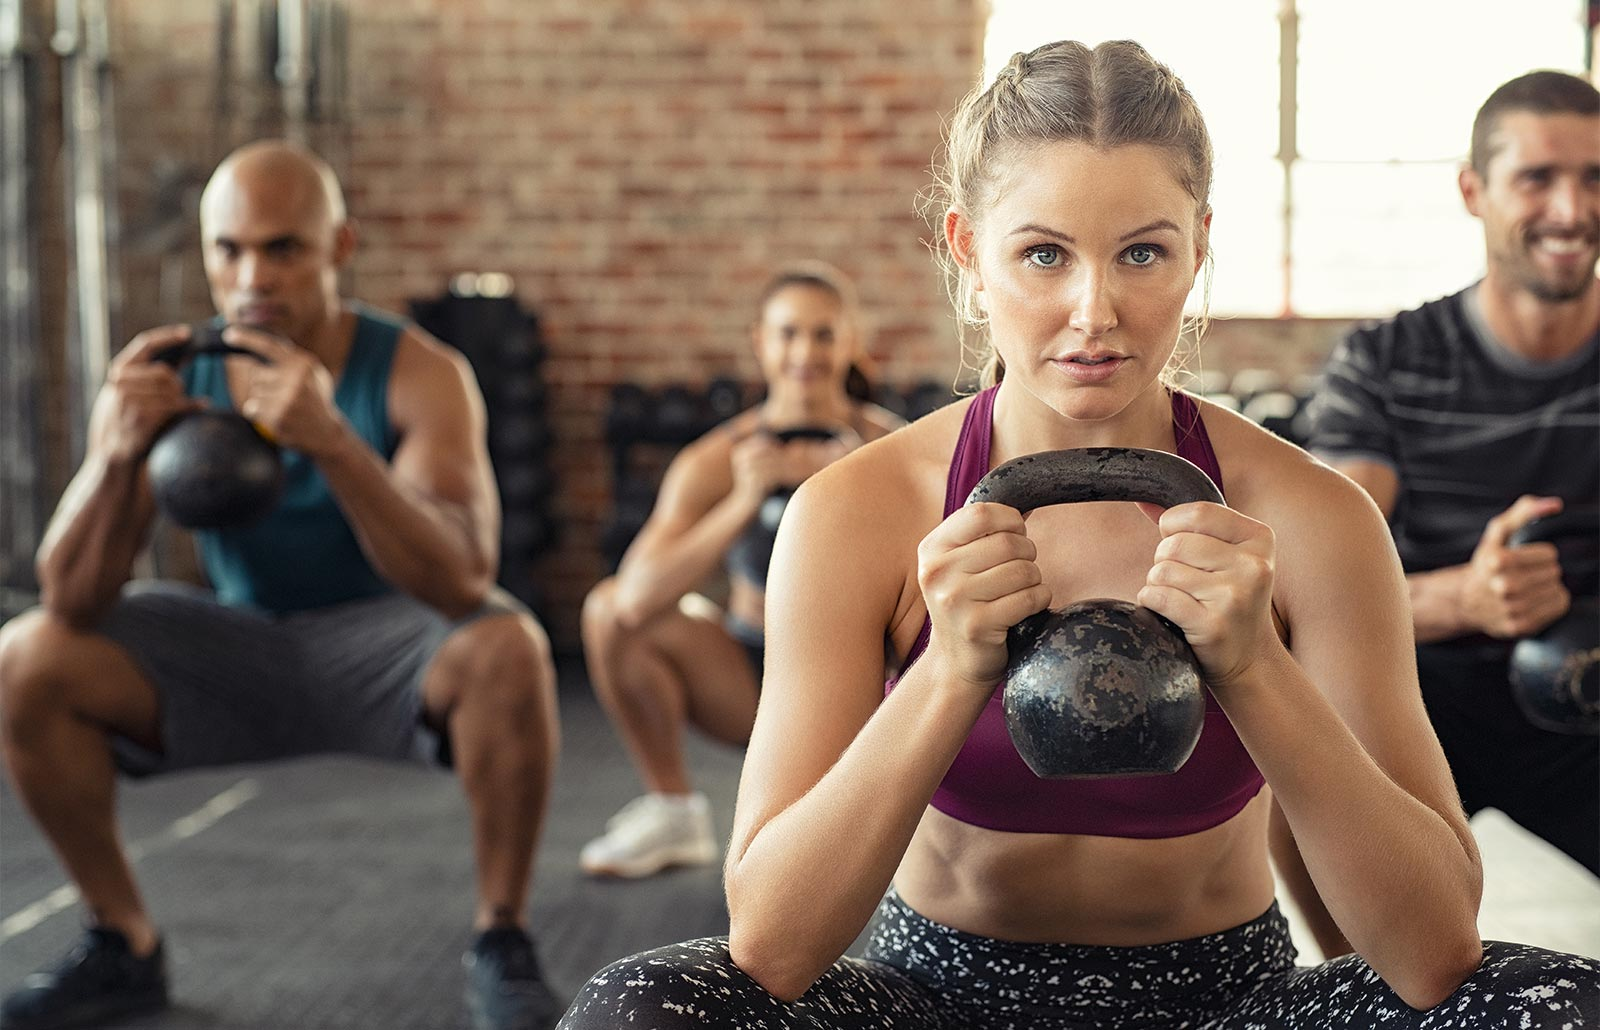 Does functional training live up to the hype?